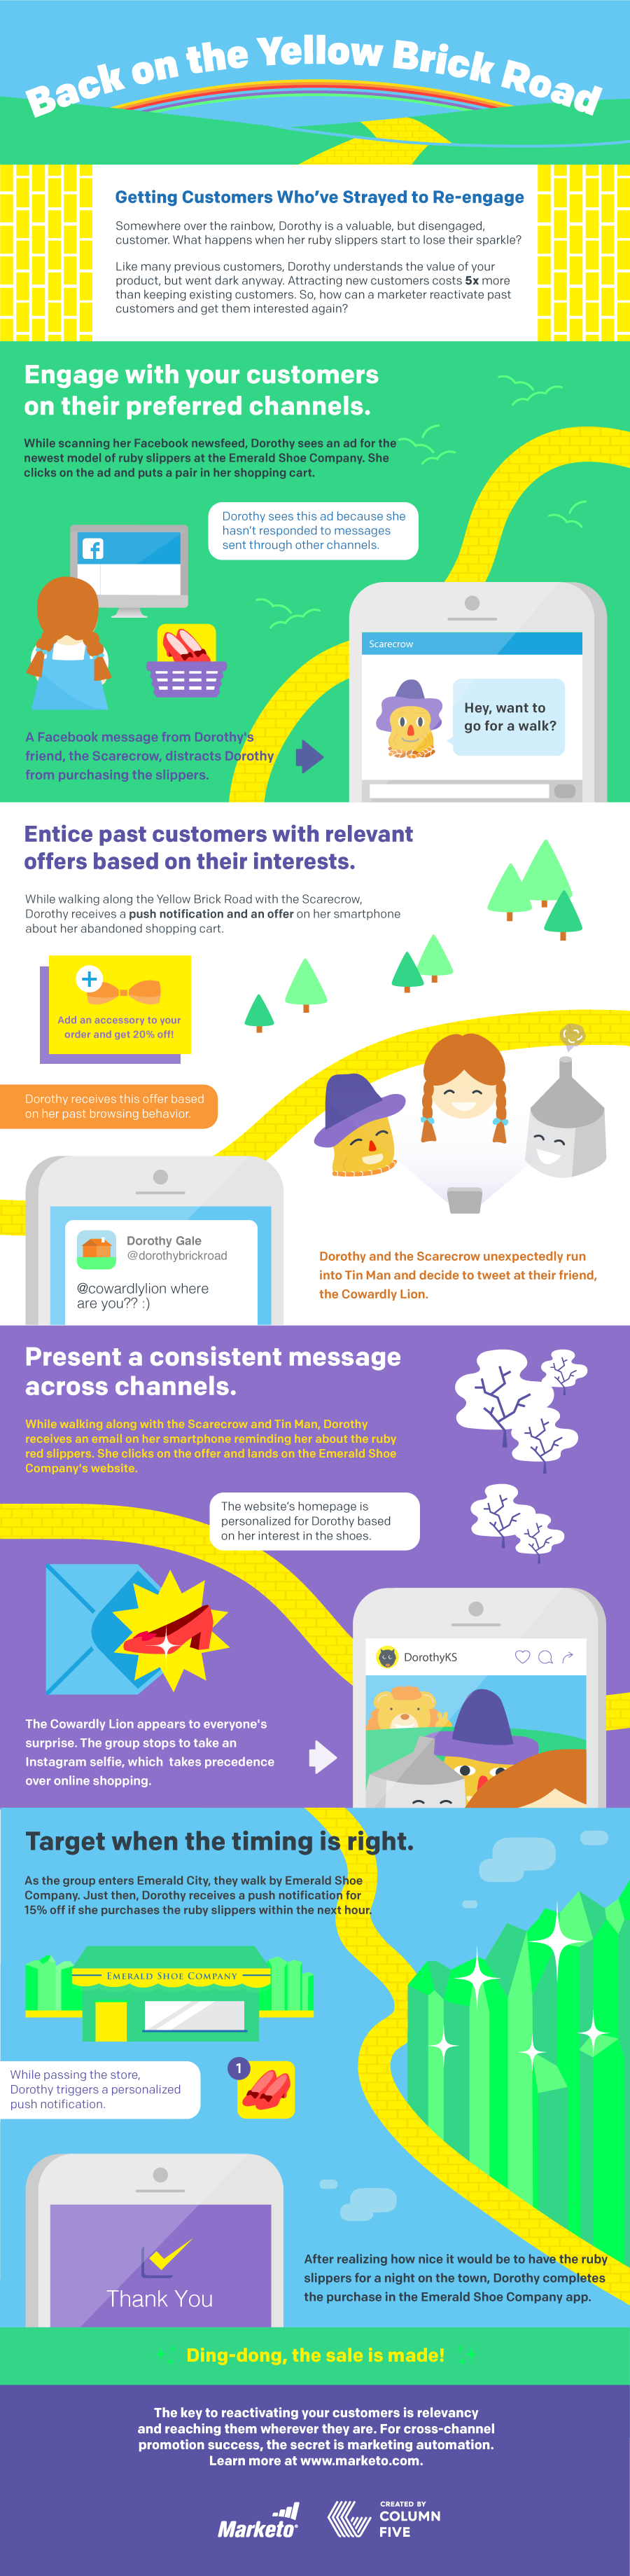 Back on the Yellow Brick Road: Getting Customers Who've Strayed To Re-engage #Infographic